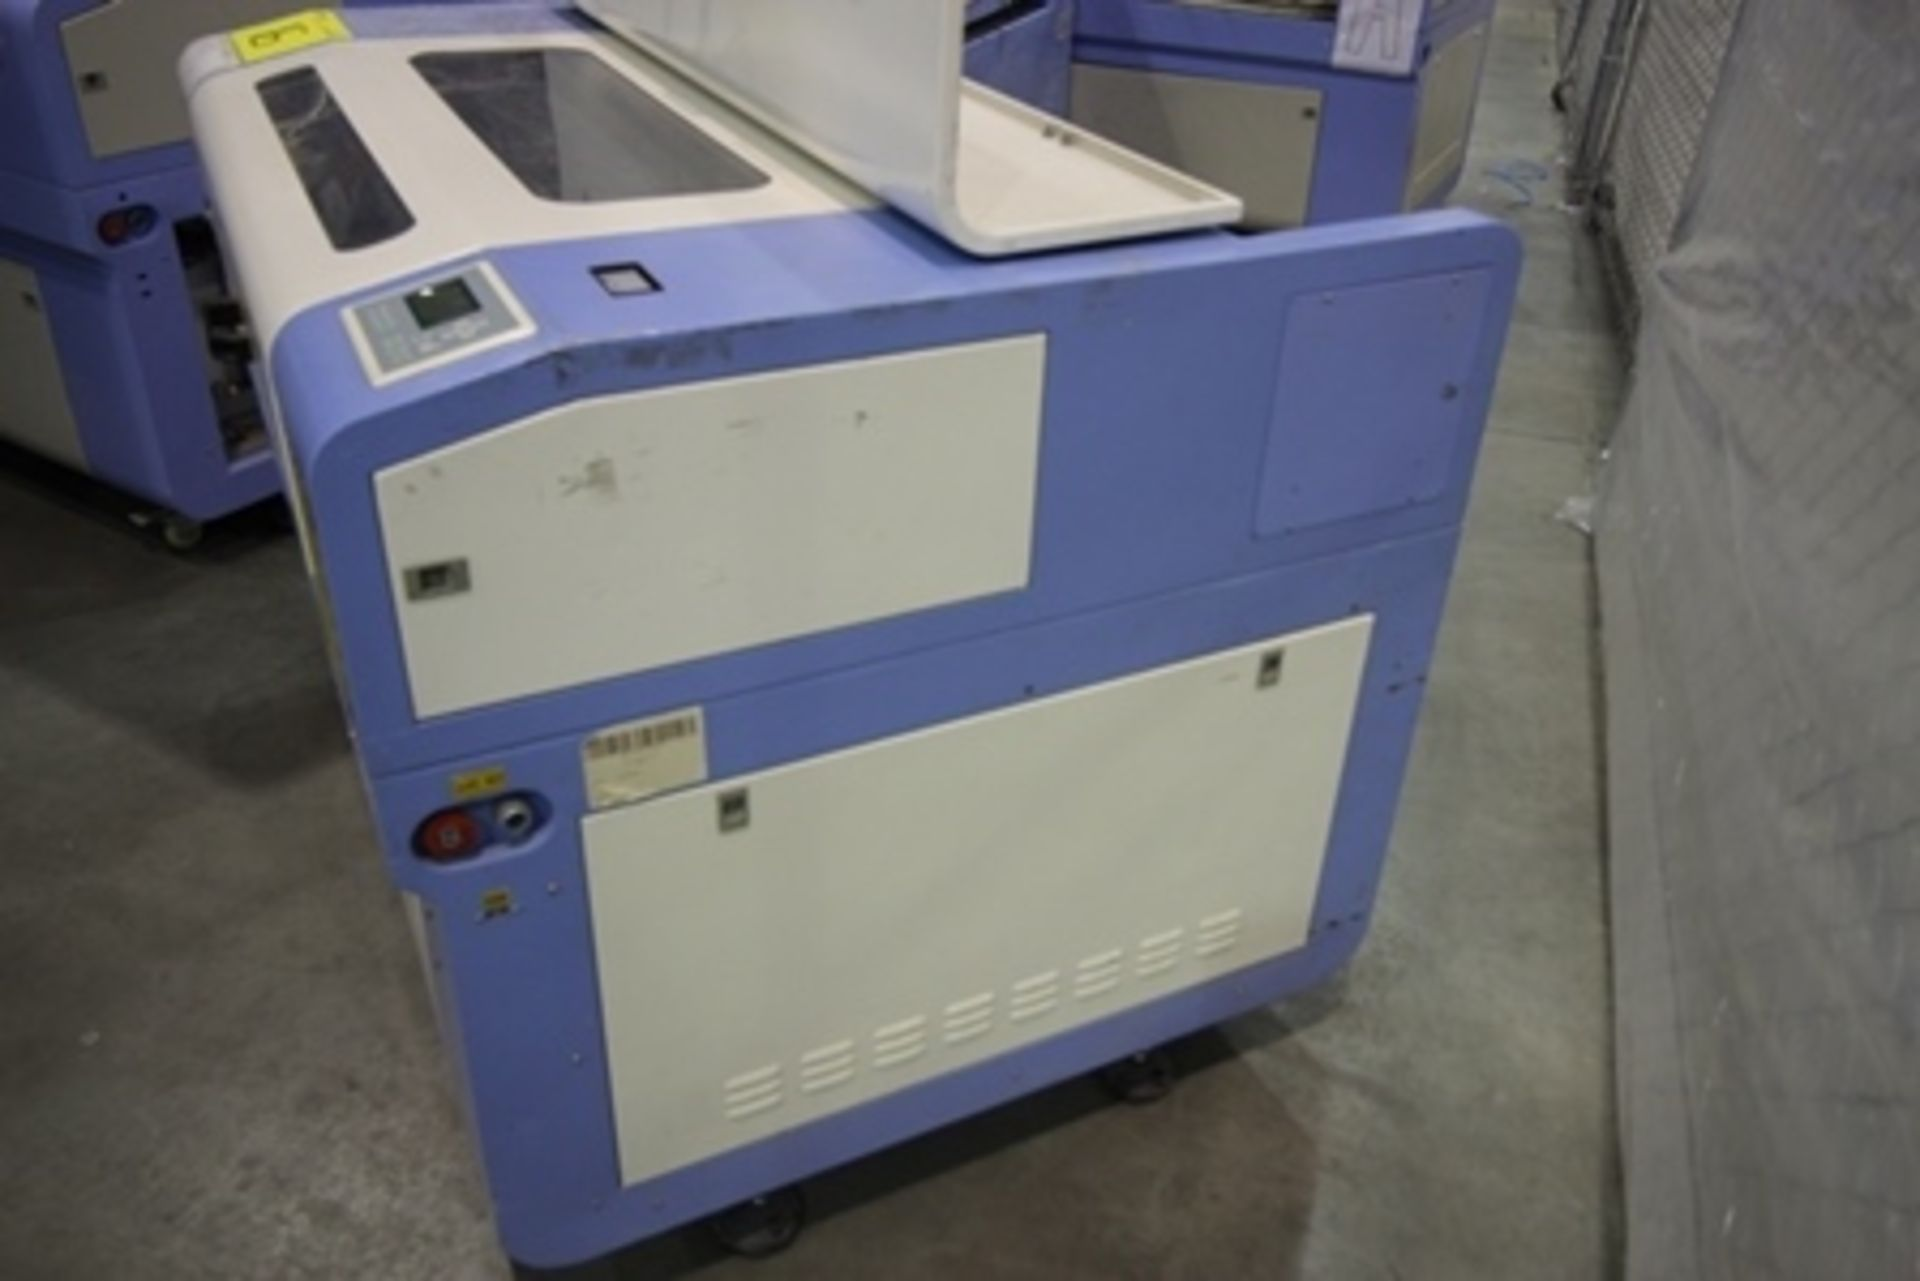 Lot 16 - 2016 Phillican CO2 laser engraver and cutting machine, model 6090.